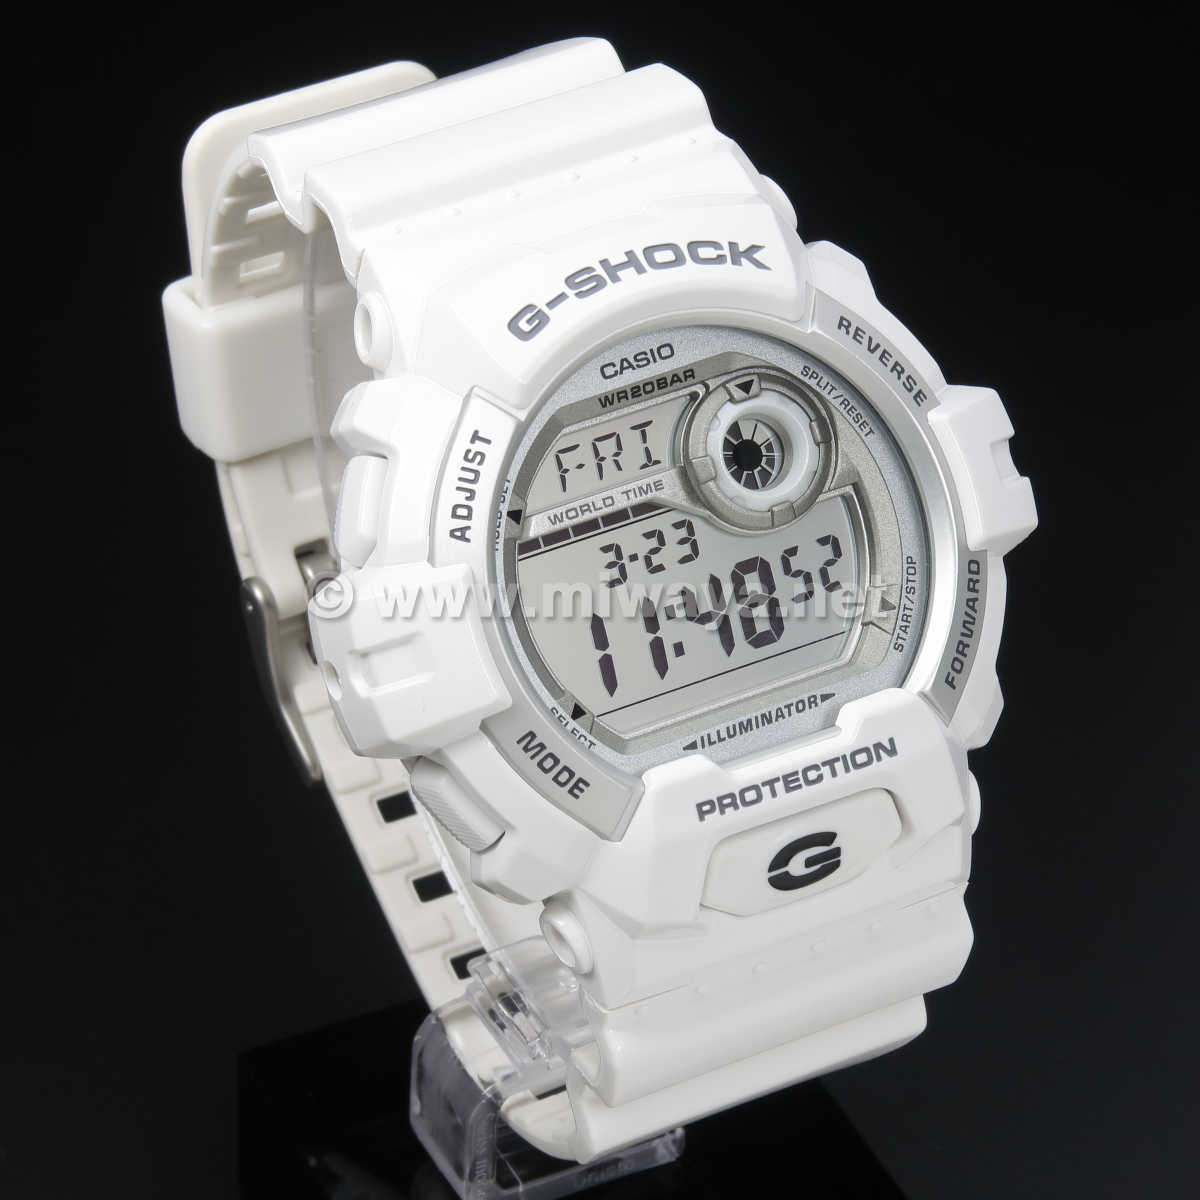 【G-SHOCK】G-8900A-7JF